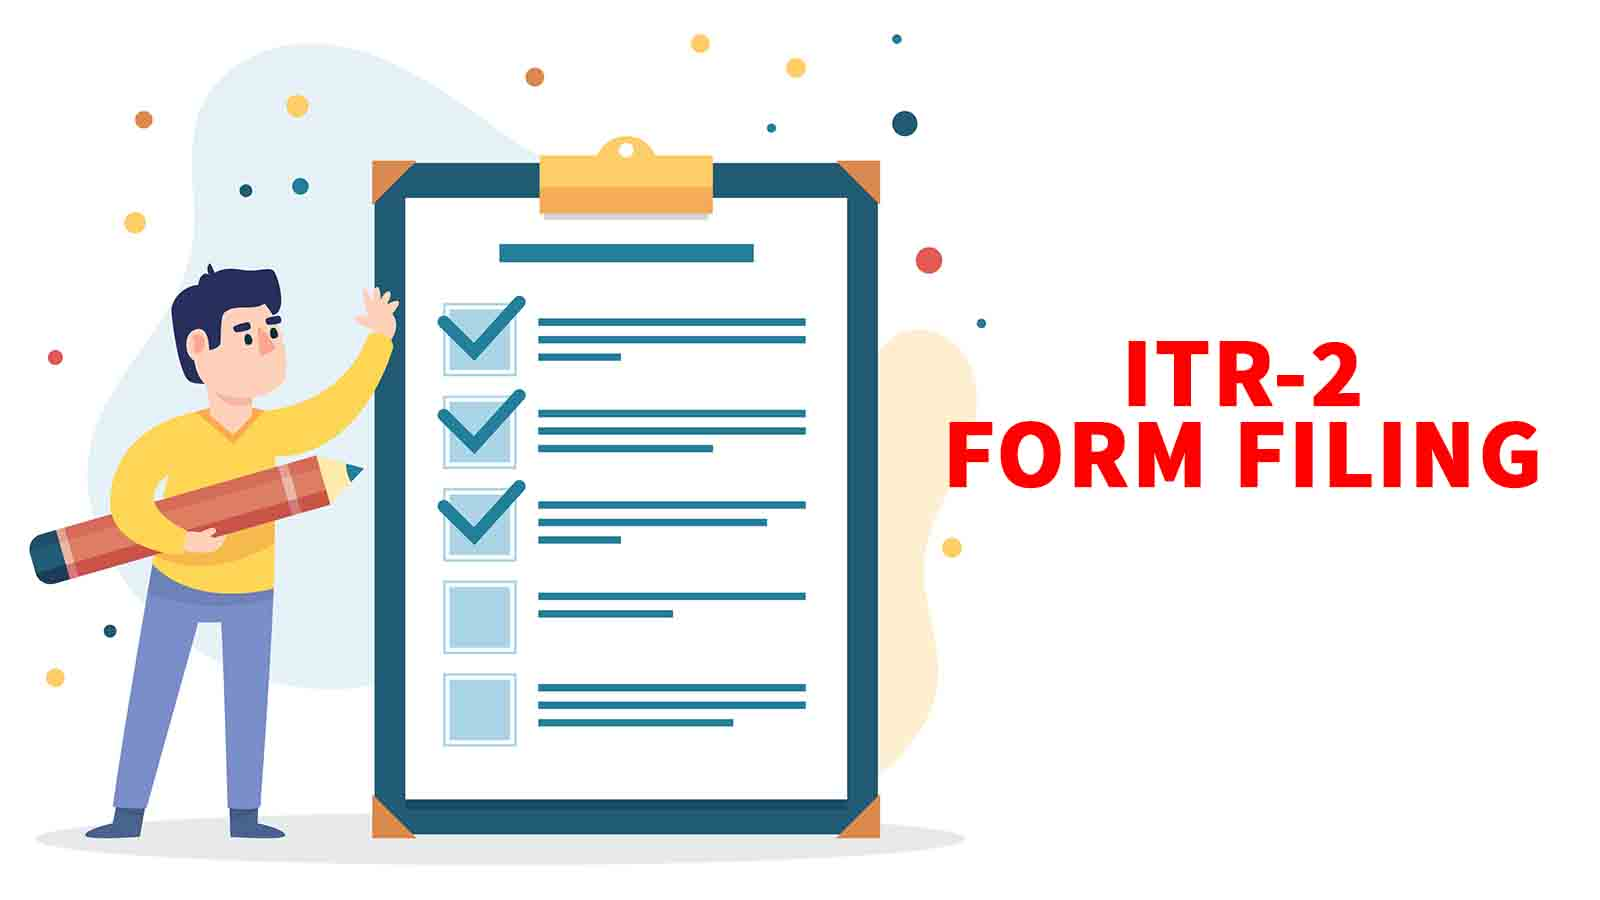 ITR-2 Excel utility Available On Its E-Filing Portal